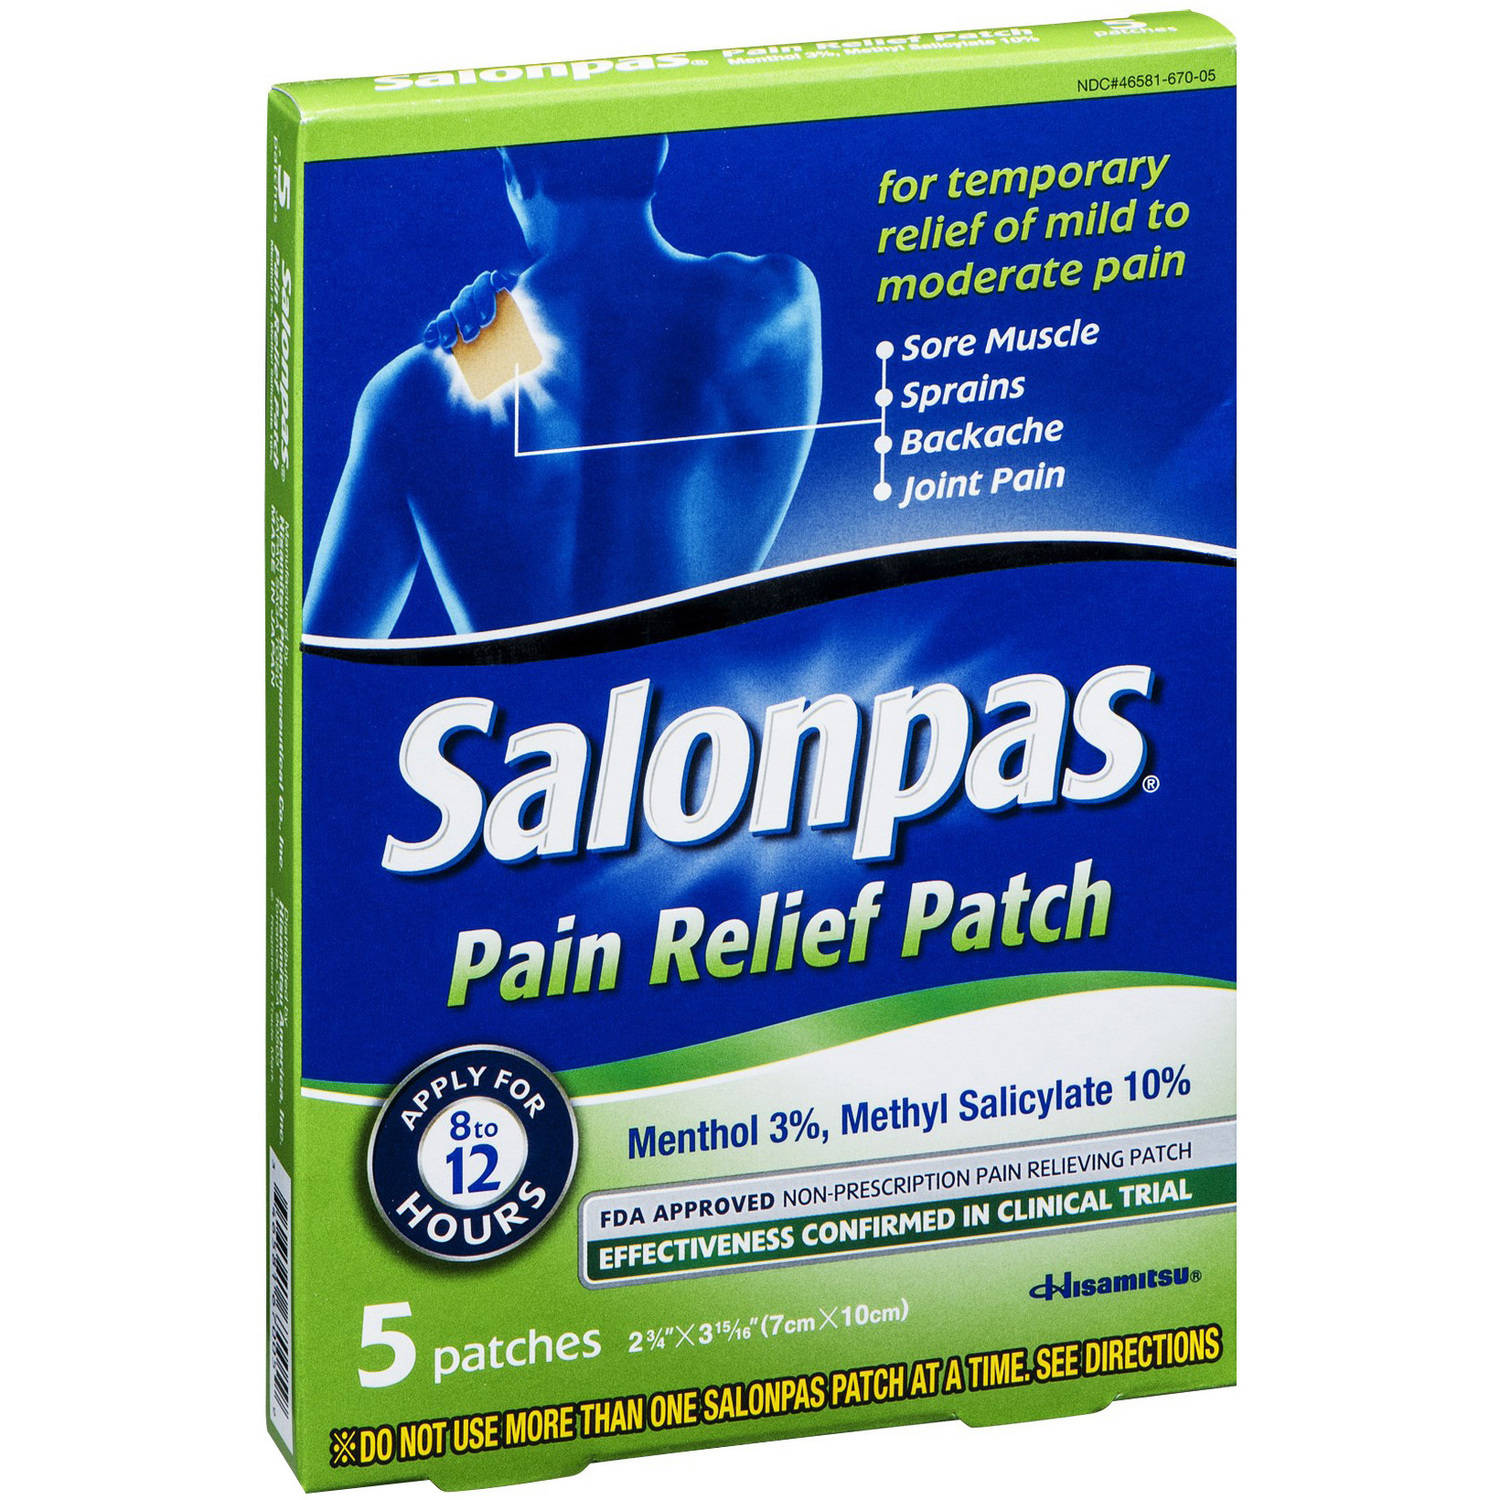 Salonpas Salonpas Pain Relief Patch, 5 CT